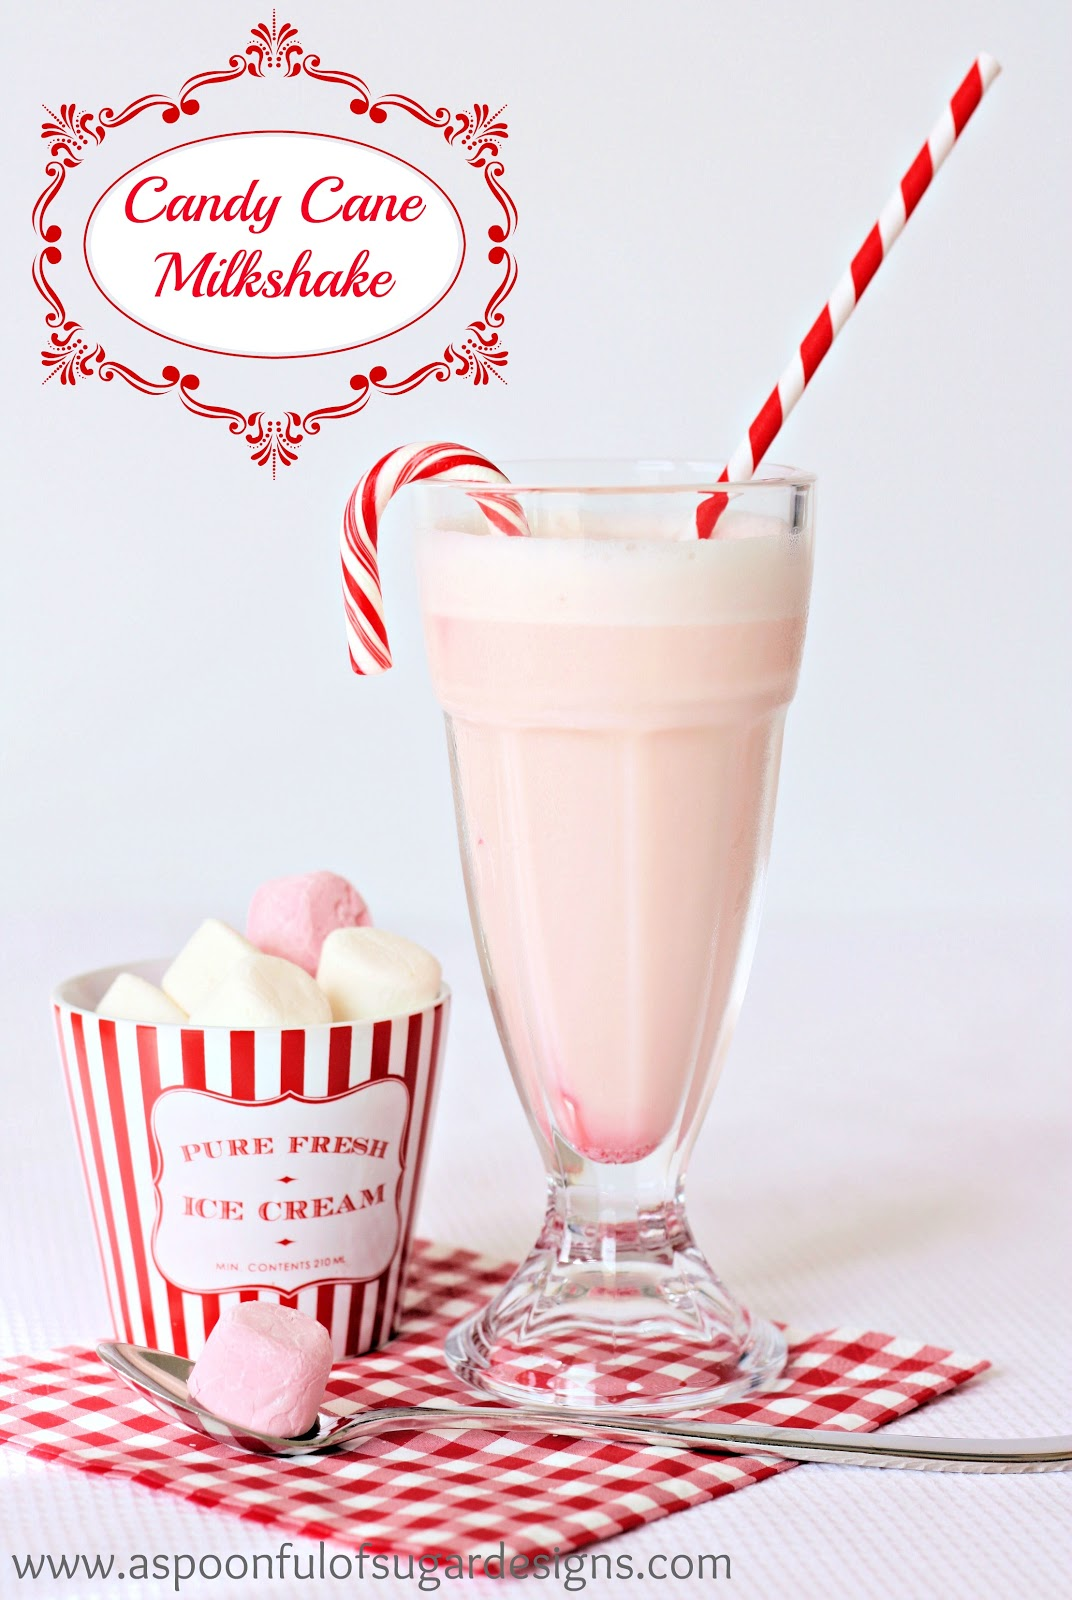 Candy Cane Milkshake by A Spoonful of Sugar Designs